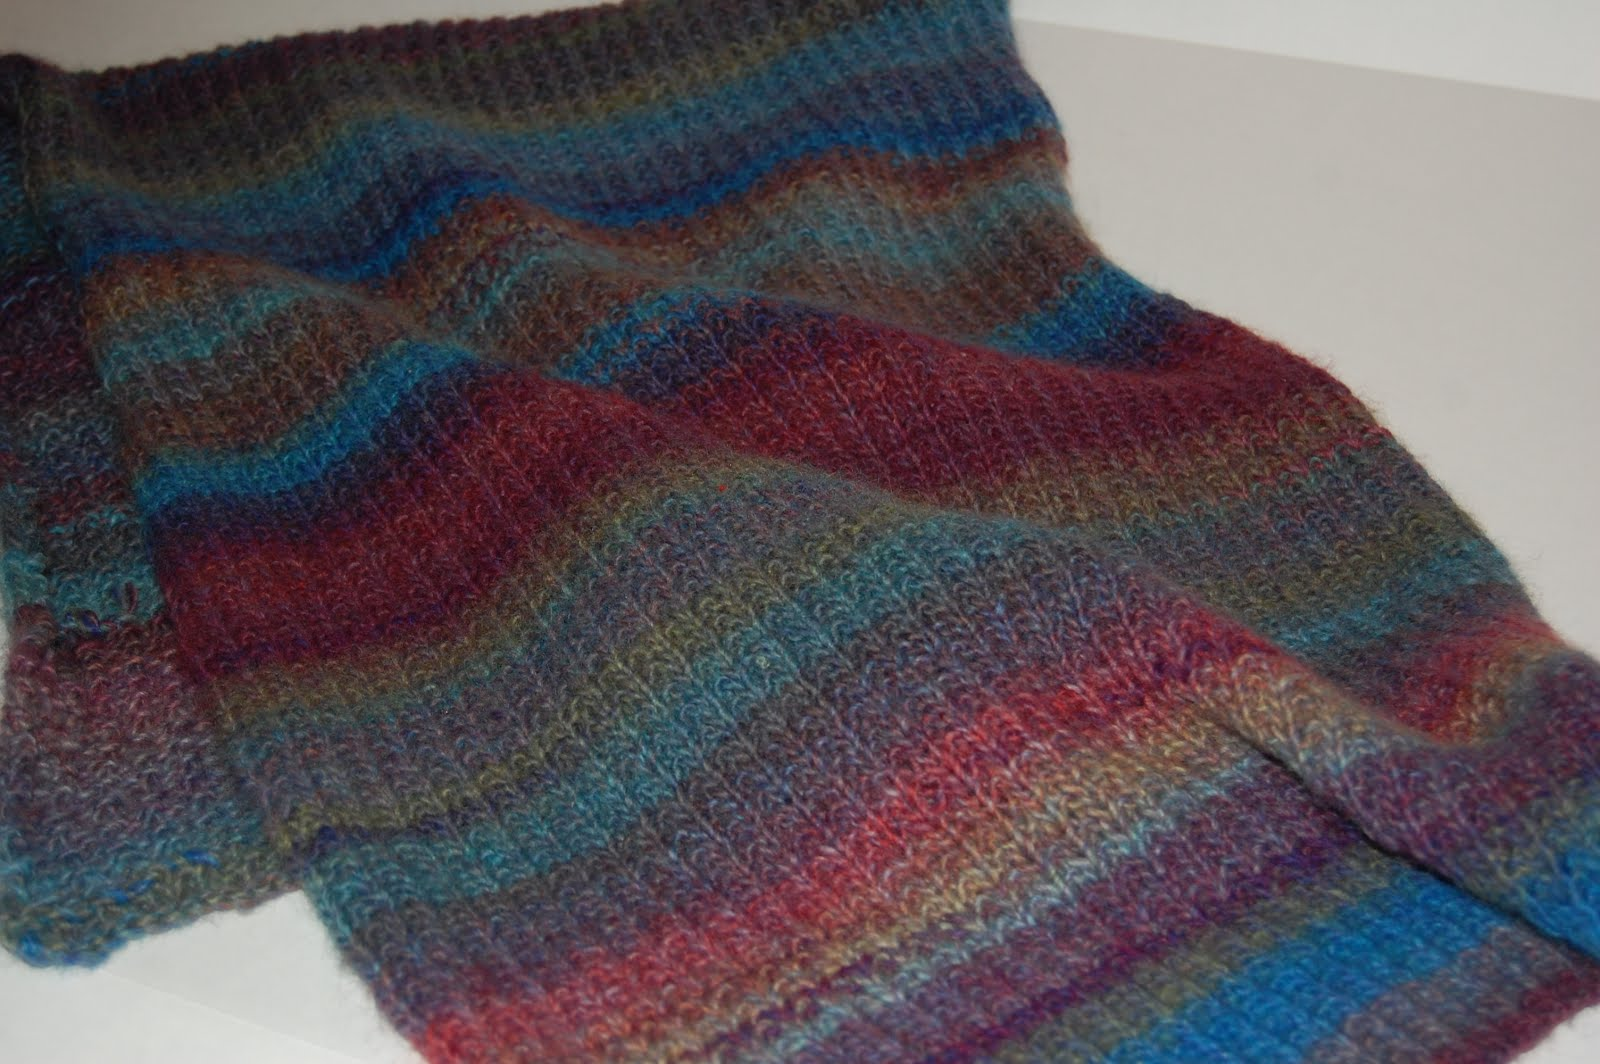 KnitOne,PearlOnion: The Amazing Mother\'s Day Self-Striping Yarn Shawl